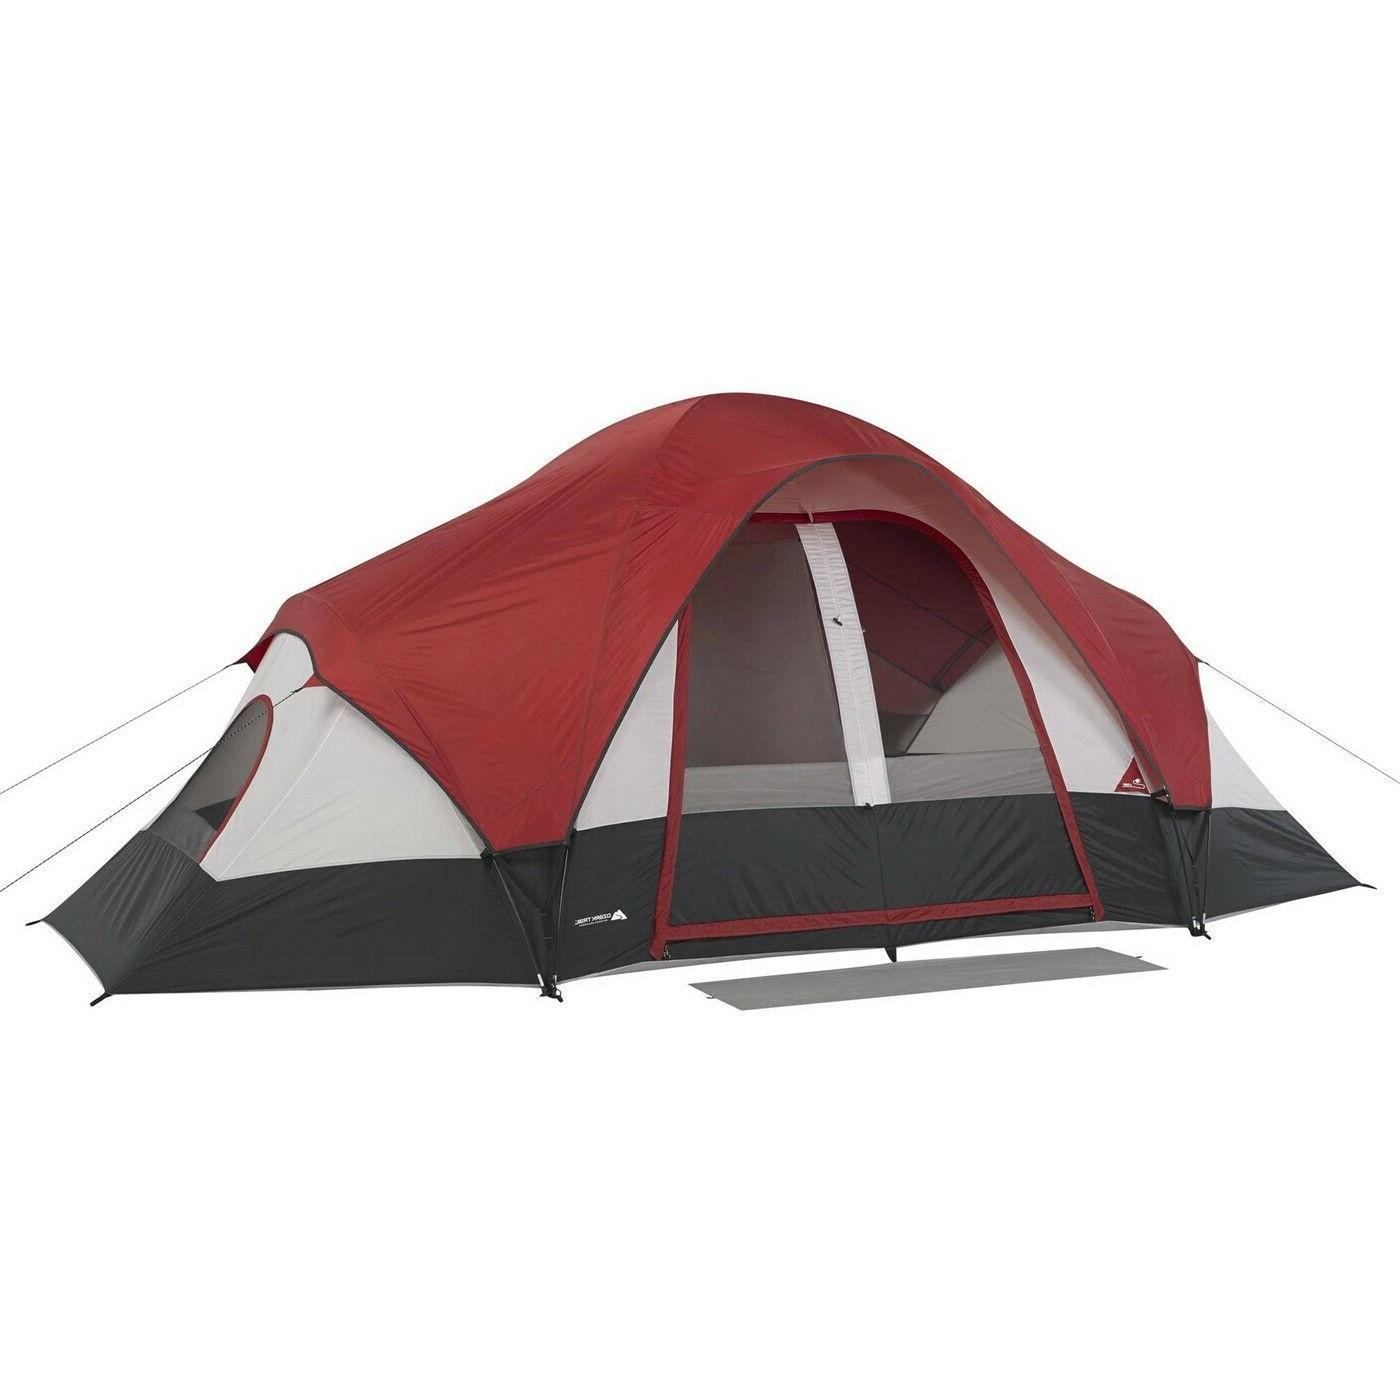 Ozark Trail 8 Person Instant Cabin Family Tent 2 Room Campin